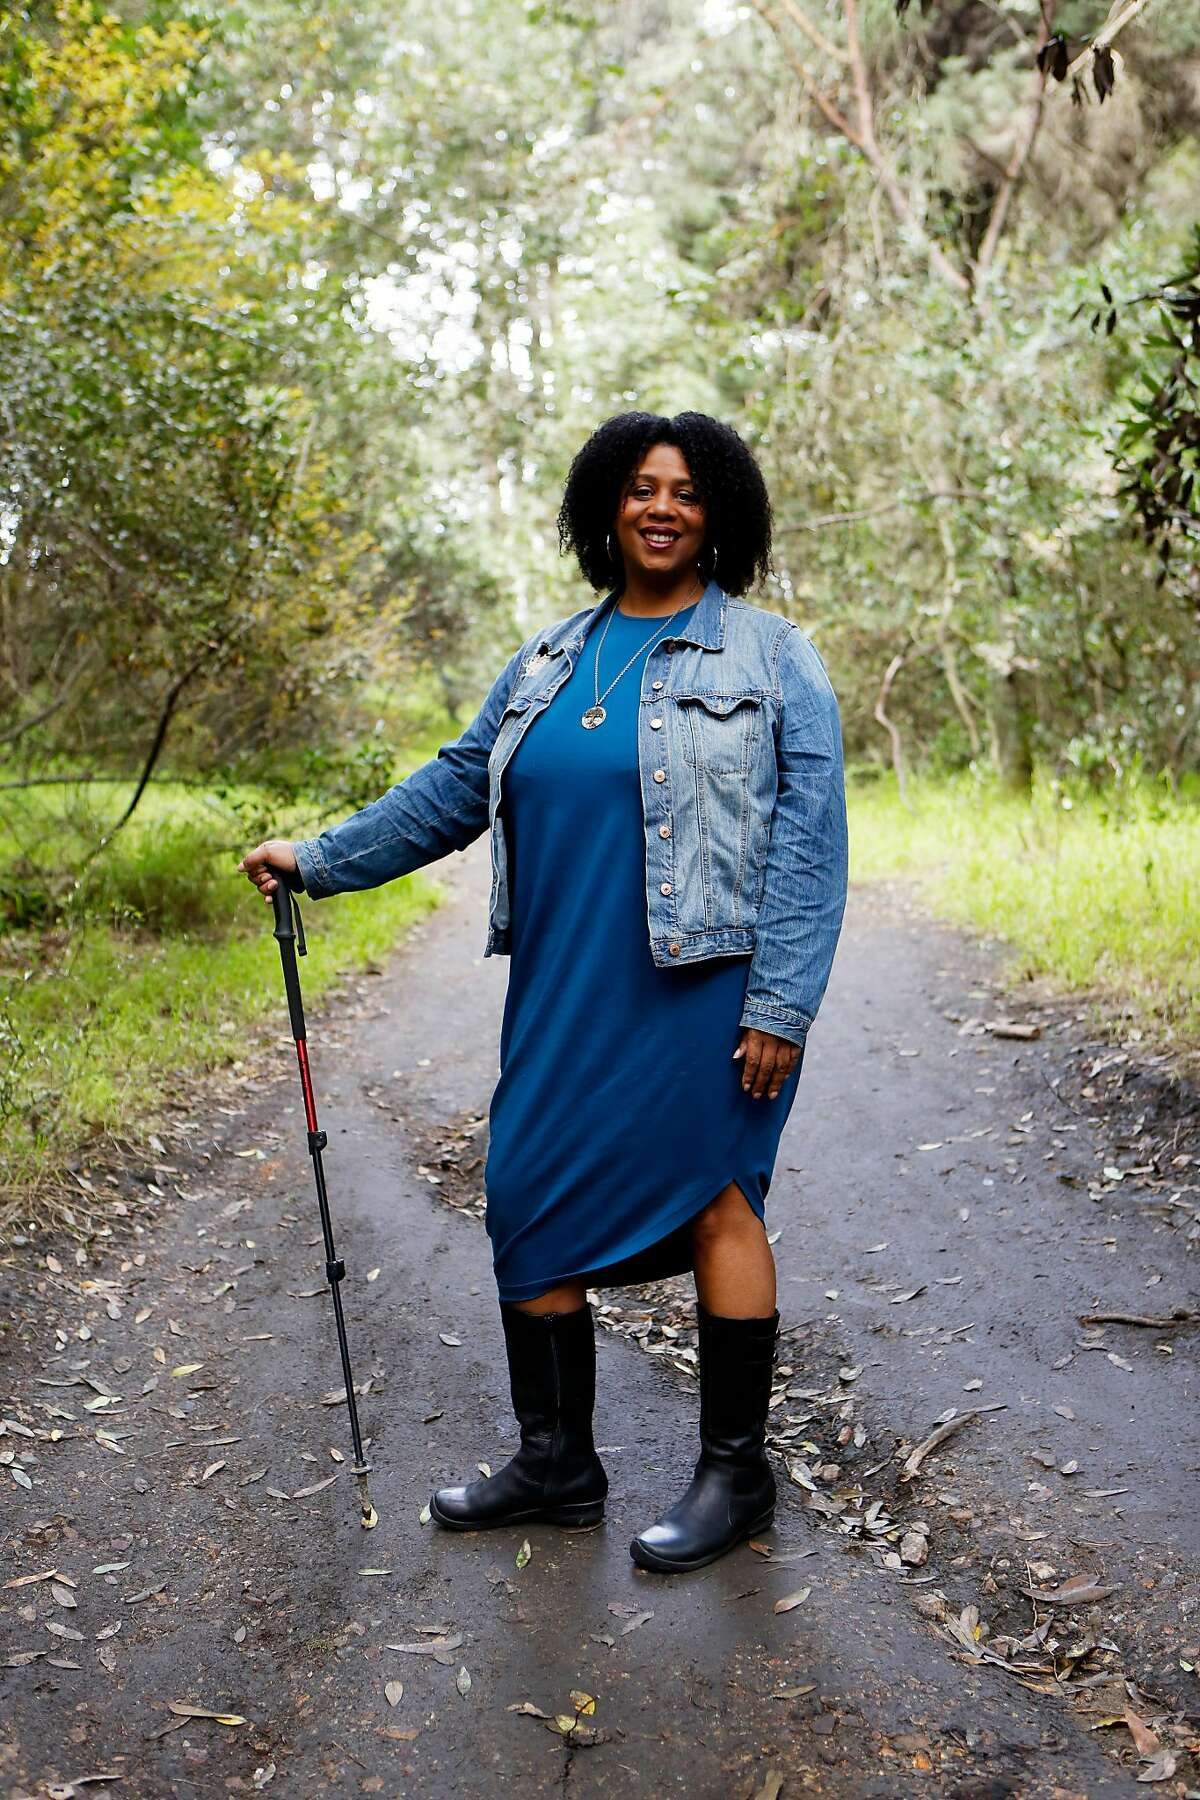 Rue Mapp, the founder of Outdoor Afro, poses for a portrait inside Joaquin Miller Park in Oakland, Calif. on Sunday, March 19, 2017. The park is one of many supported with funding from the Land and Water Conservation Fund, which is up for a permanent funding vote before Congress.